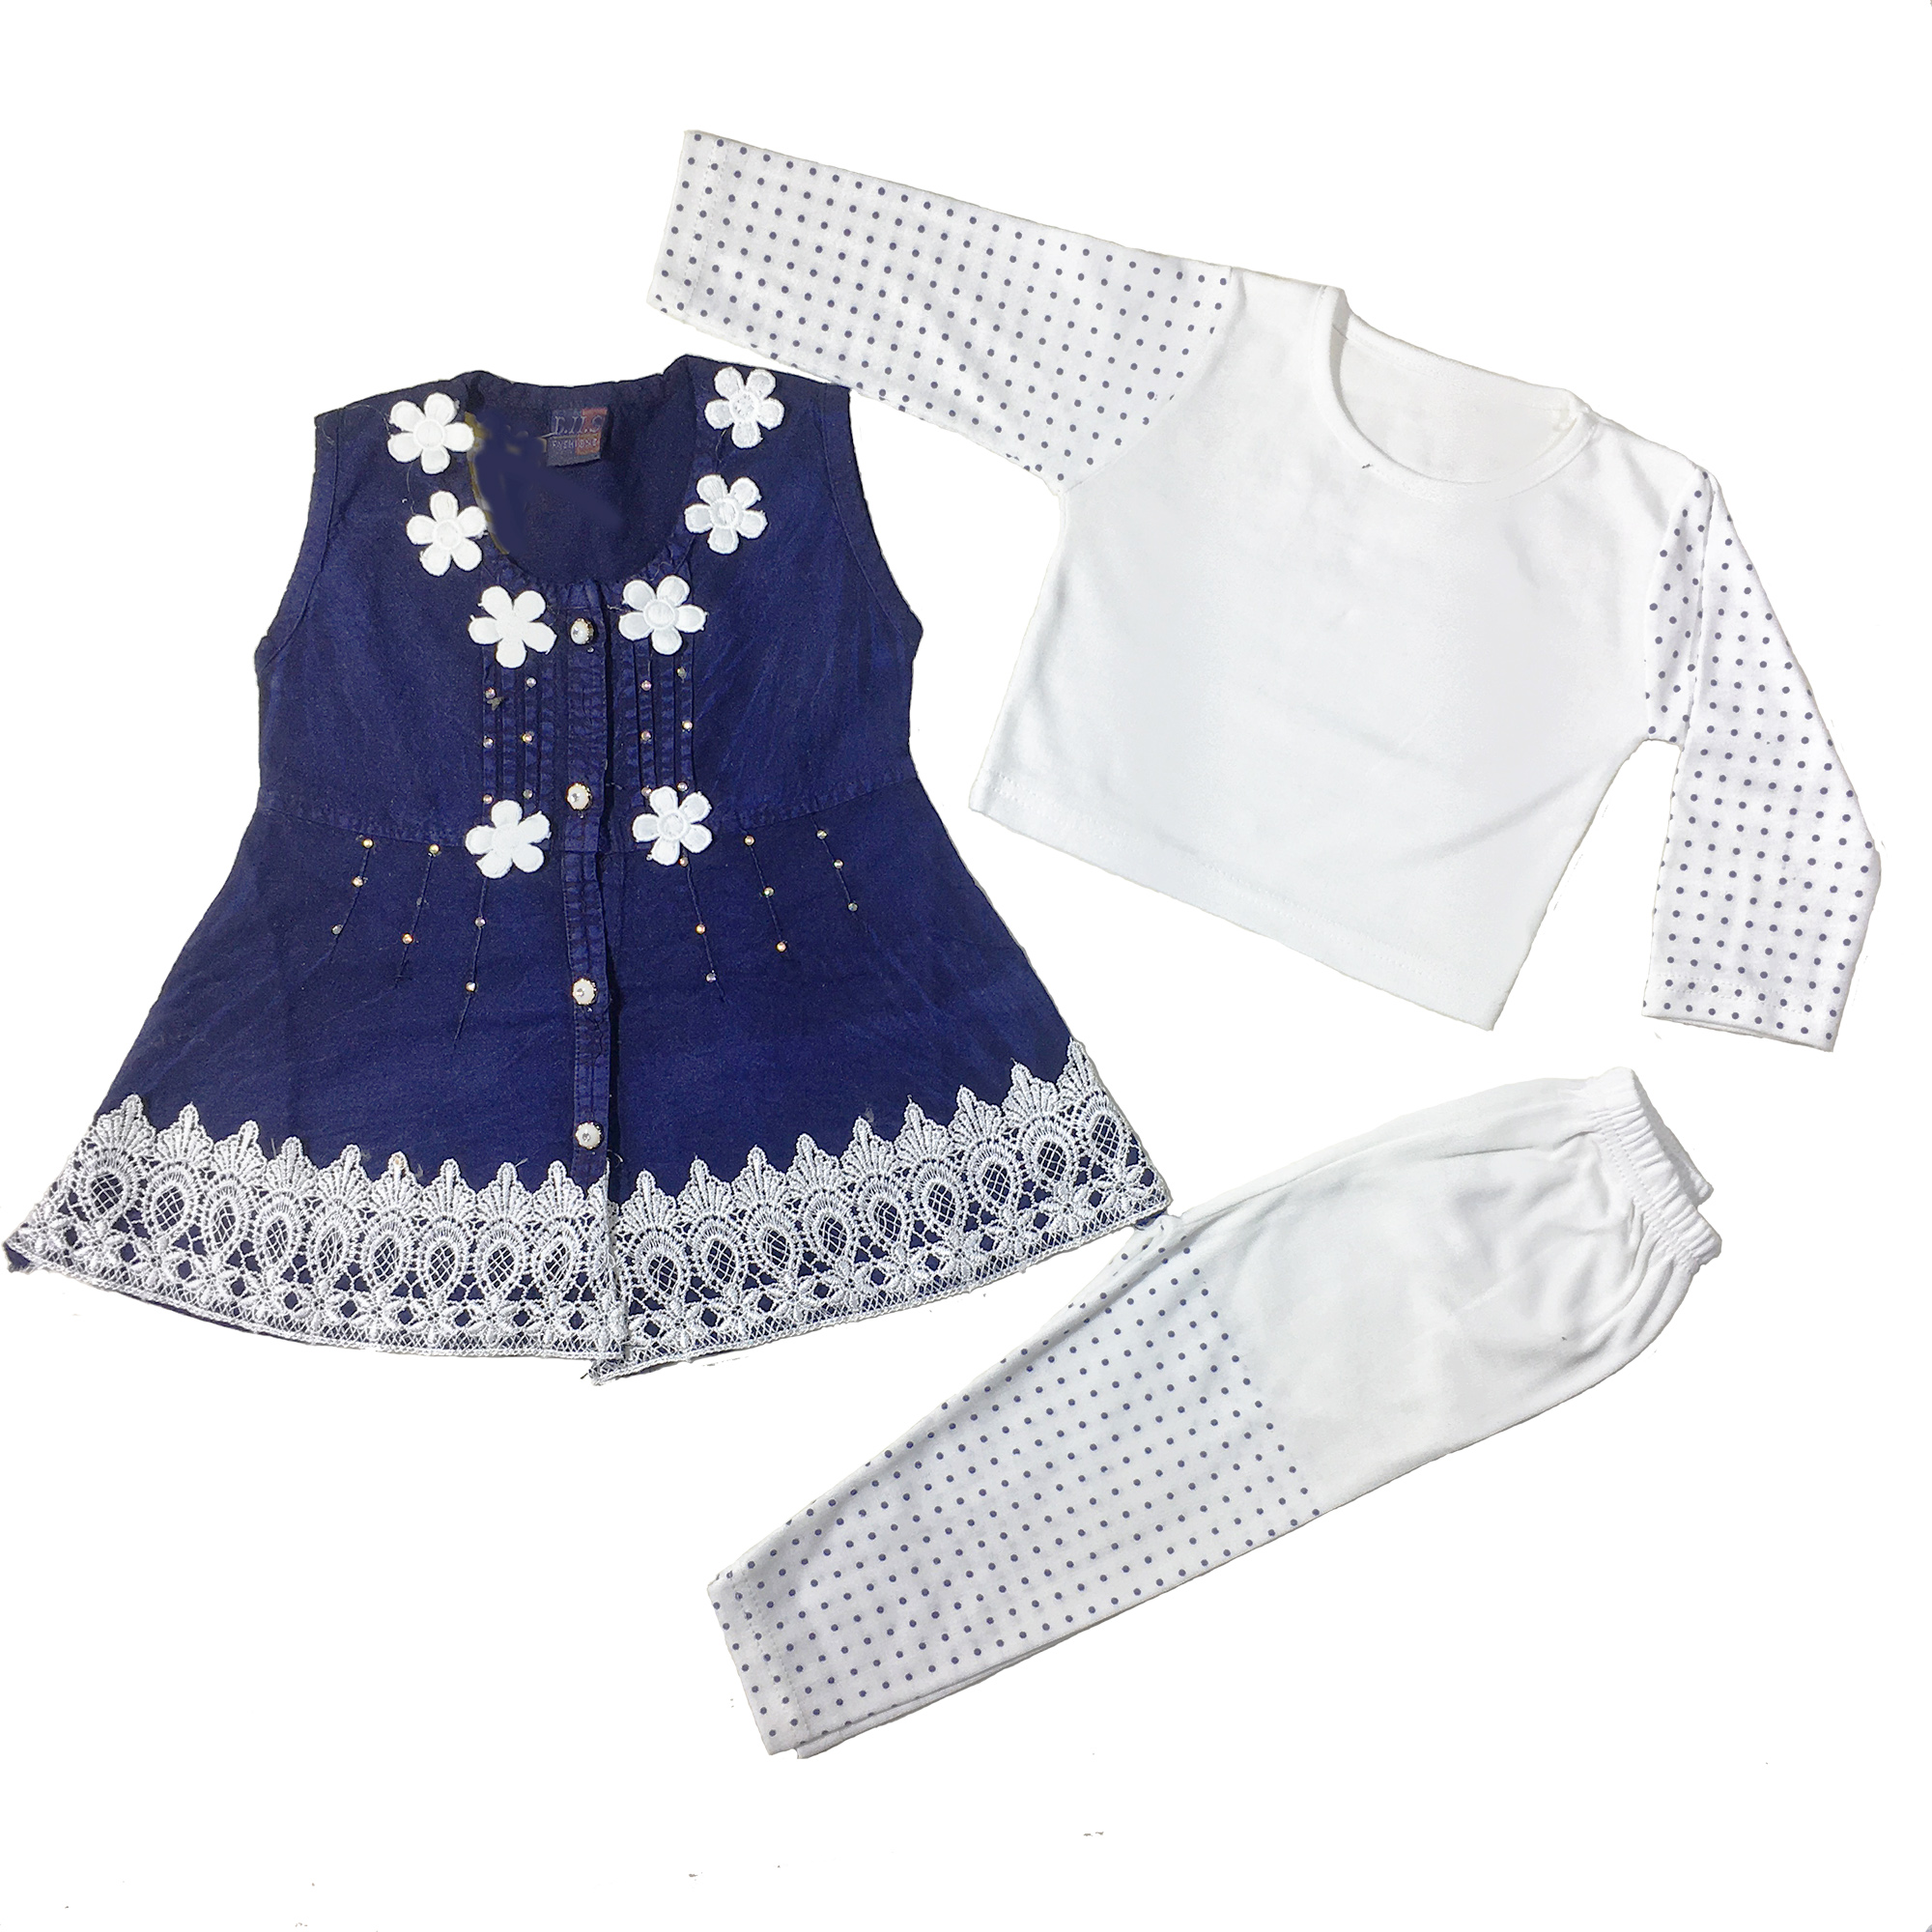 Baby Girls Clothes Denim Uper & Stylish Outfit 3pc Suit